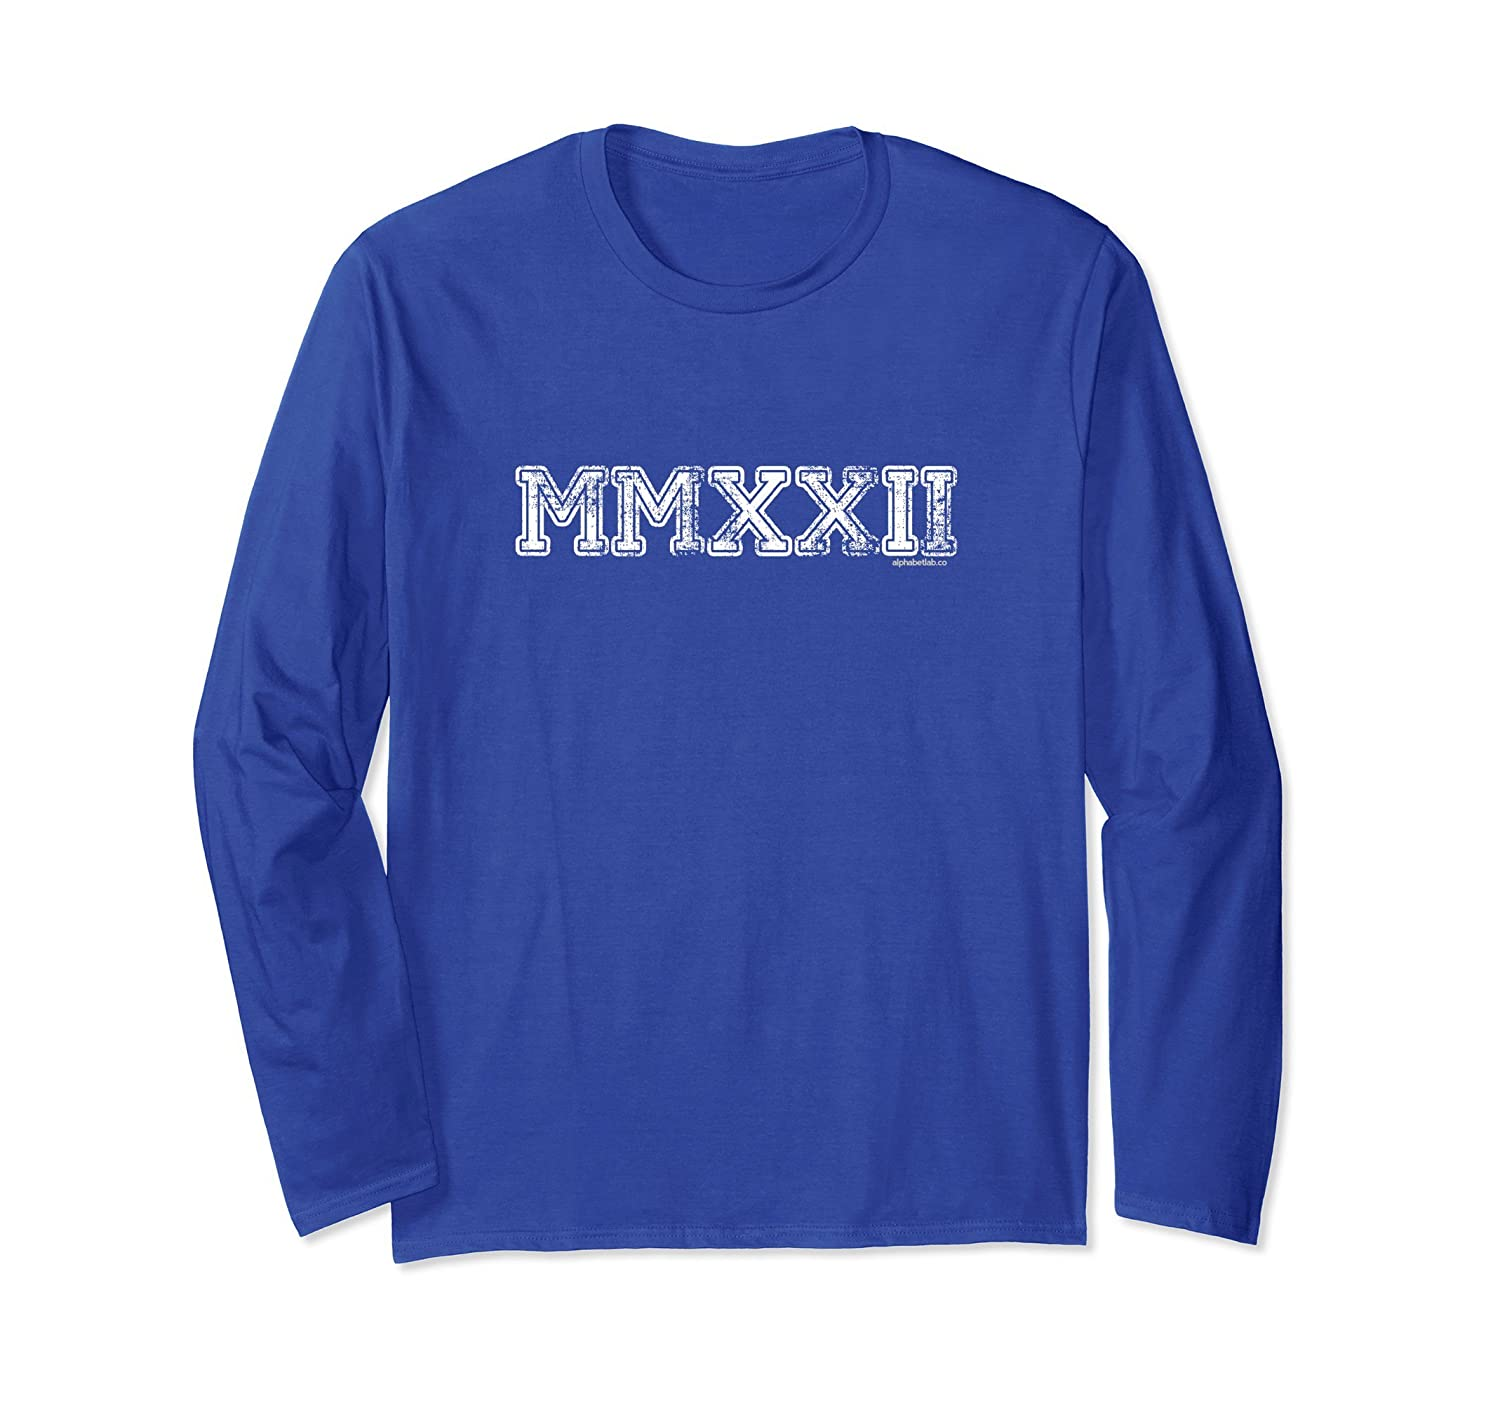 2022 Shirts MMXXII | Senior Class of 2022 Graduation Gifts-alottee gift